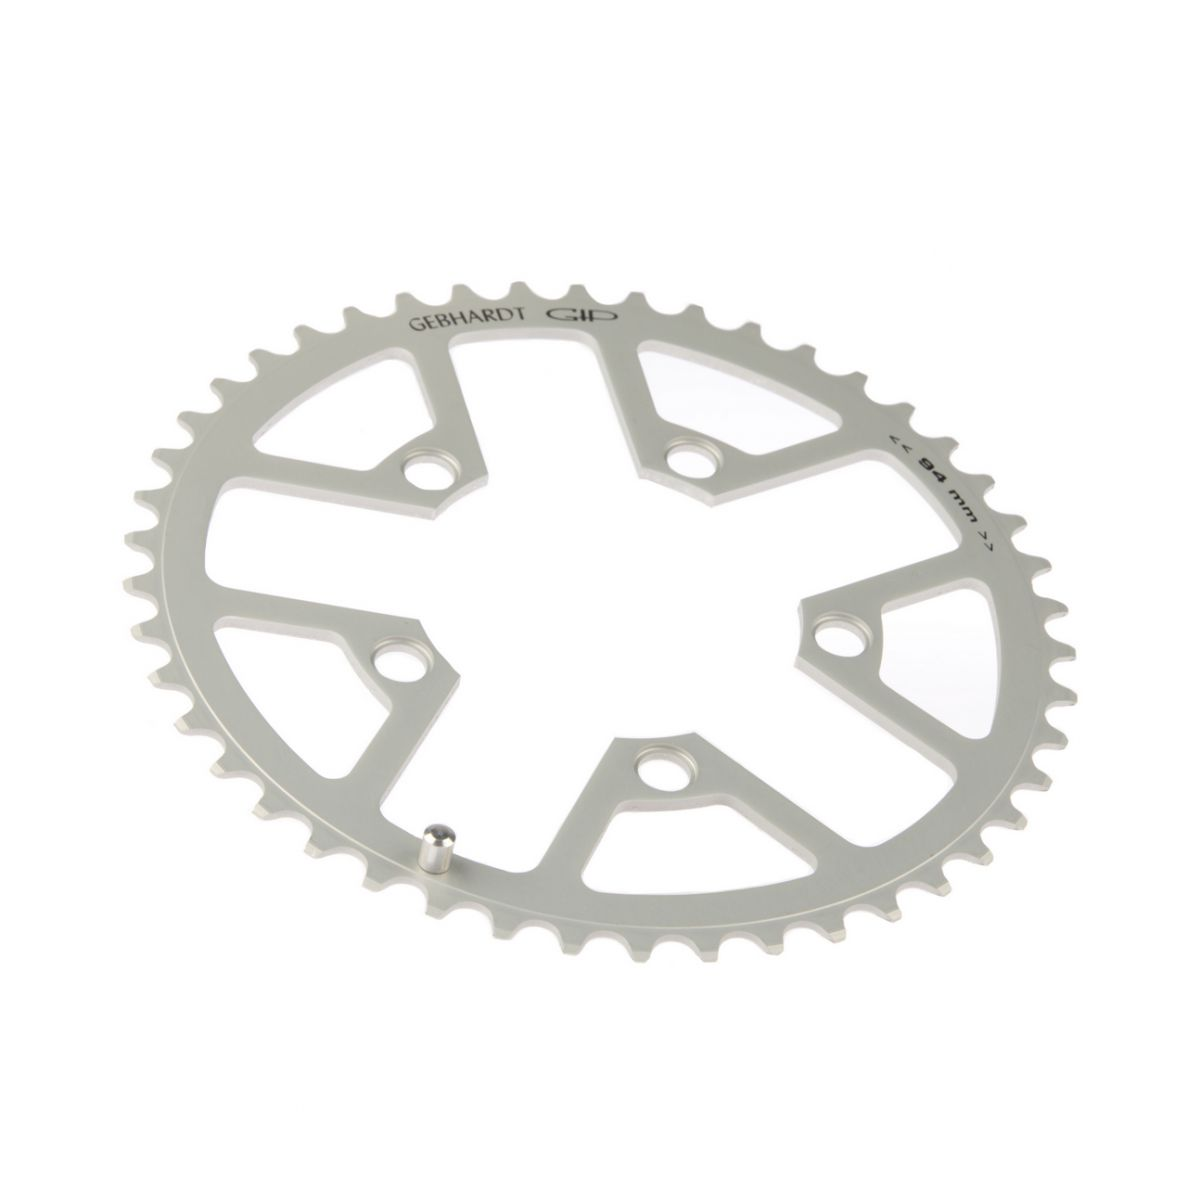 gebhardt chainring classic bcd 94 mm 5hole 46t silver